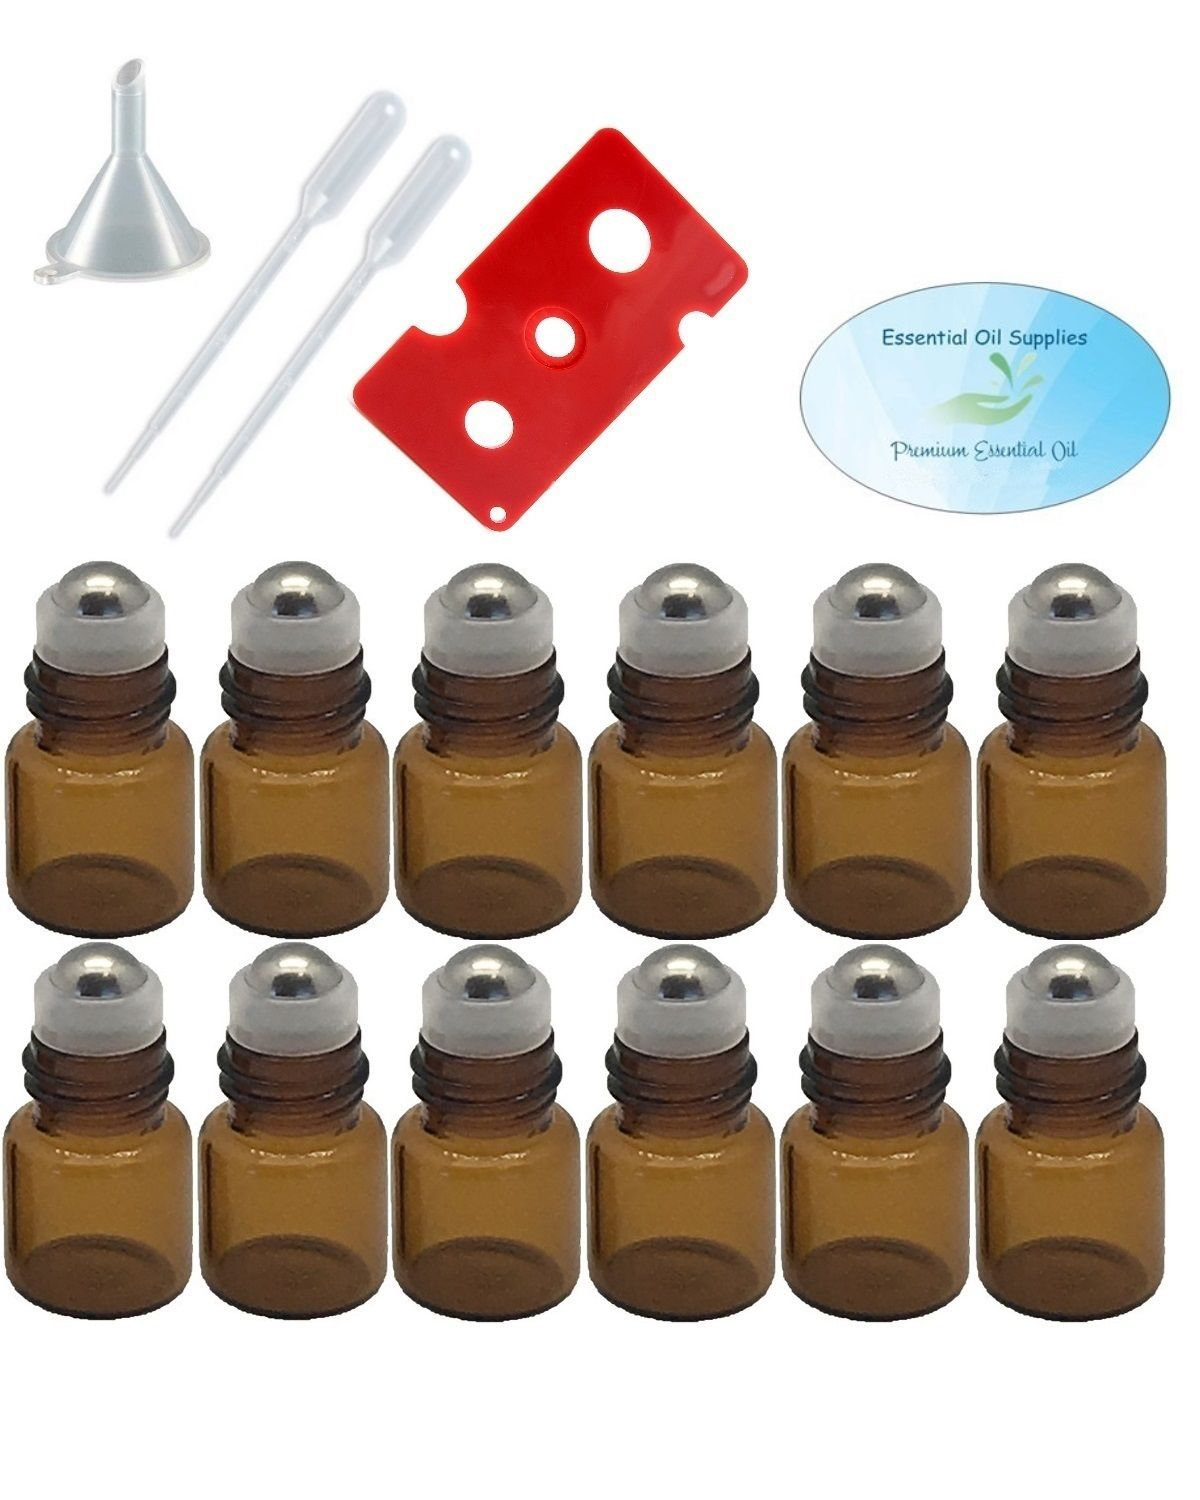 2ml Amber Glass Roller Bottles with Stainless Steel Balls (Pack of 12), Funnel, Pipettes, and Essential Oil... by